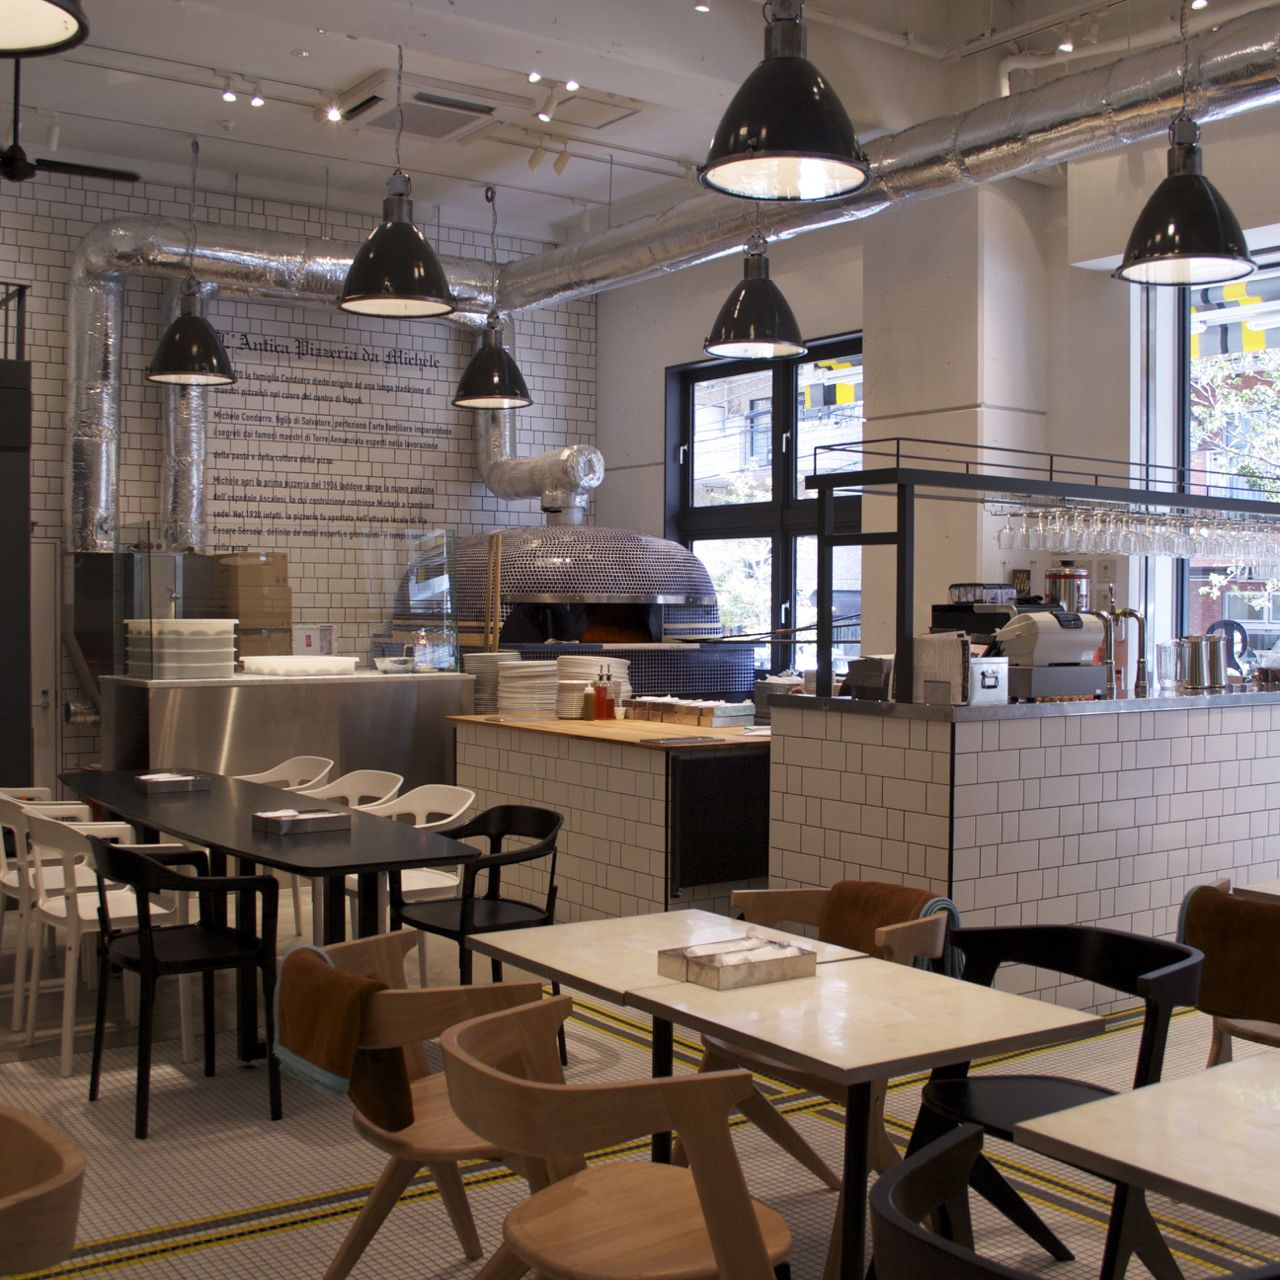 Trainspotters.co.uk - Project lighting salvaged pizzeria da ...